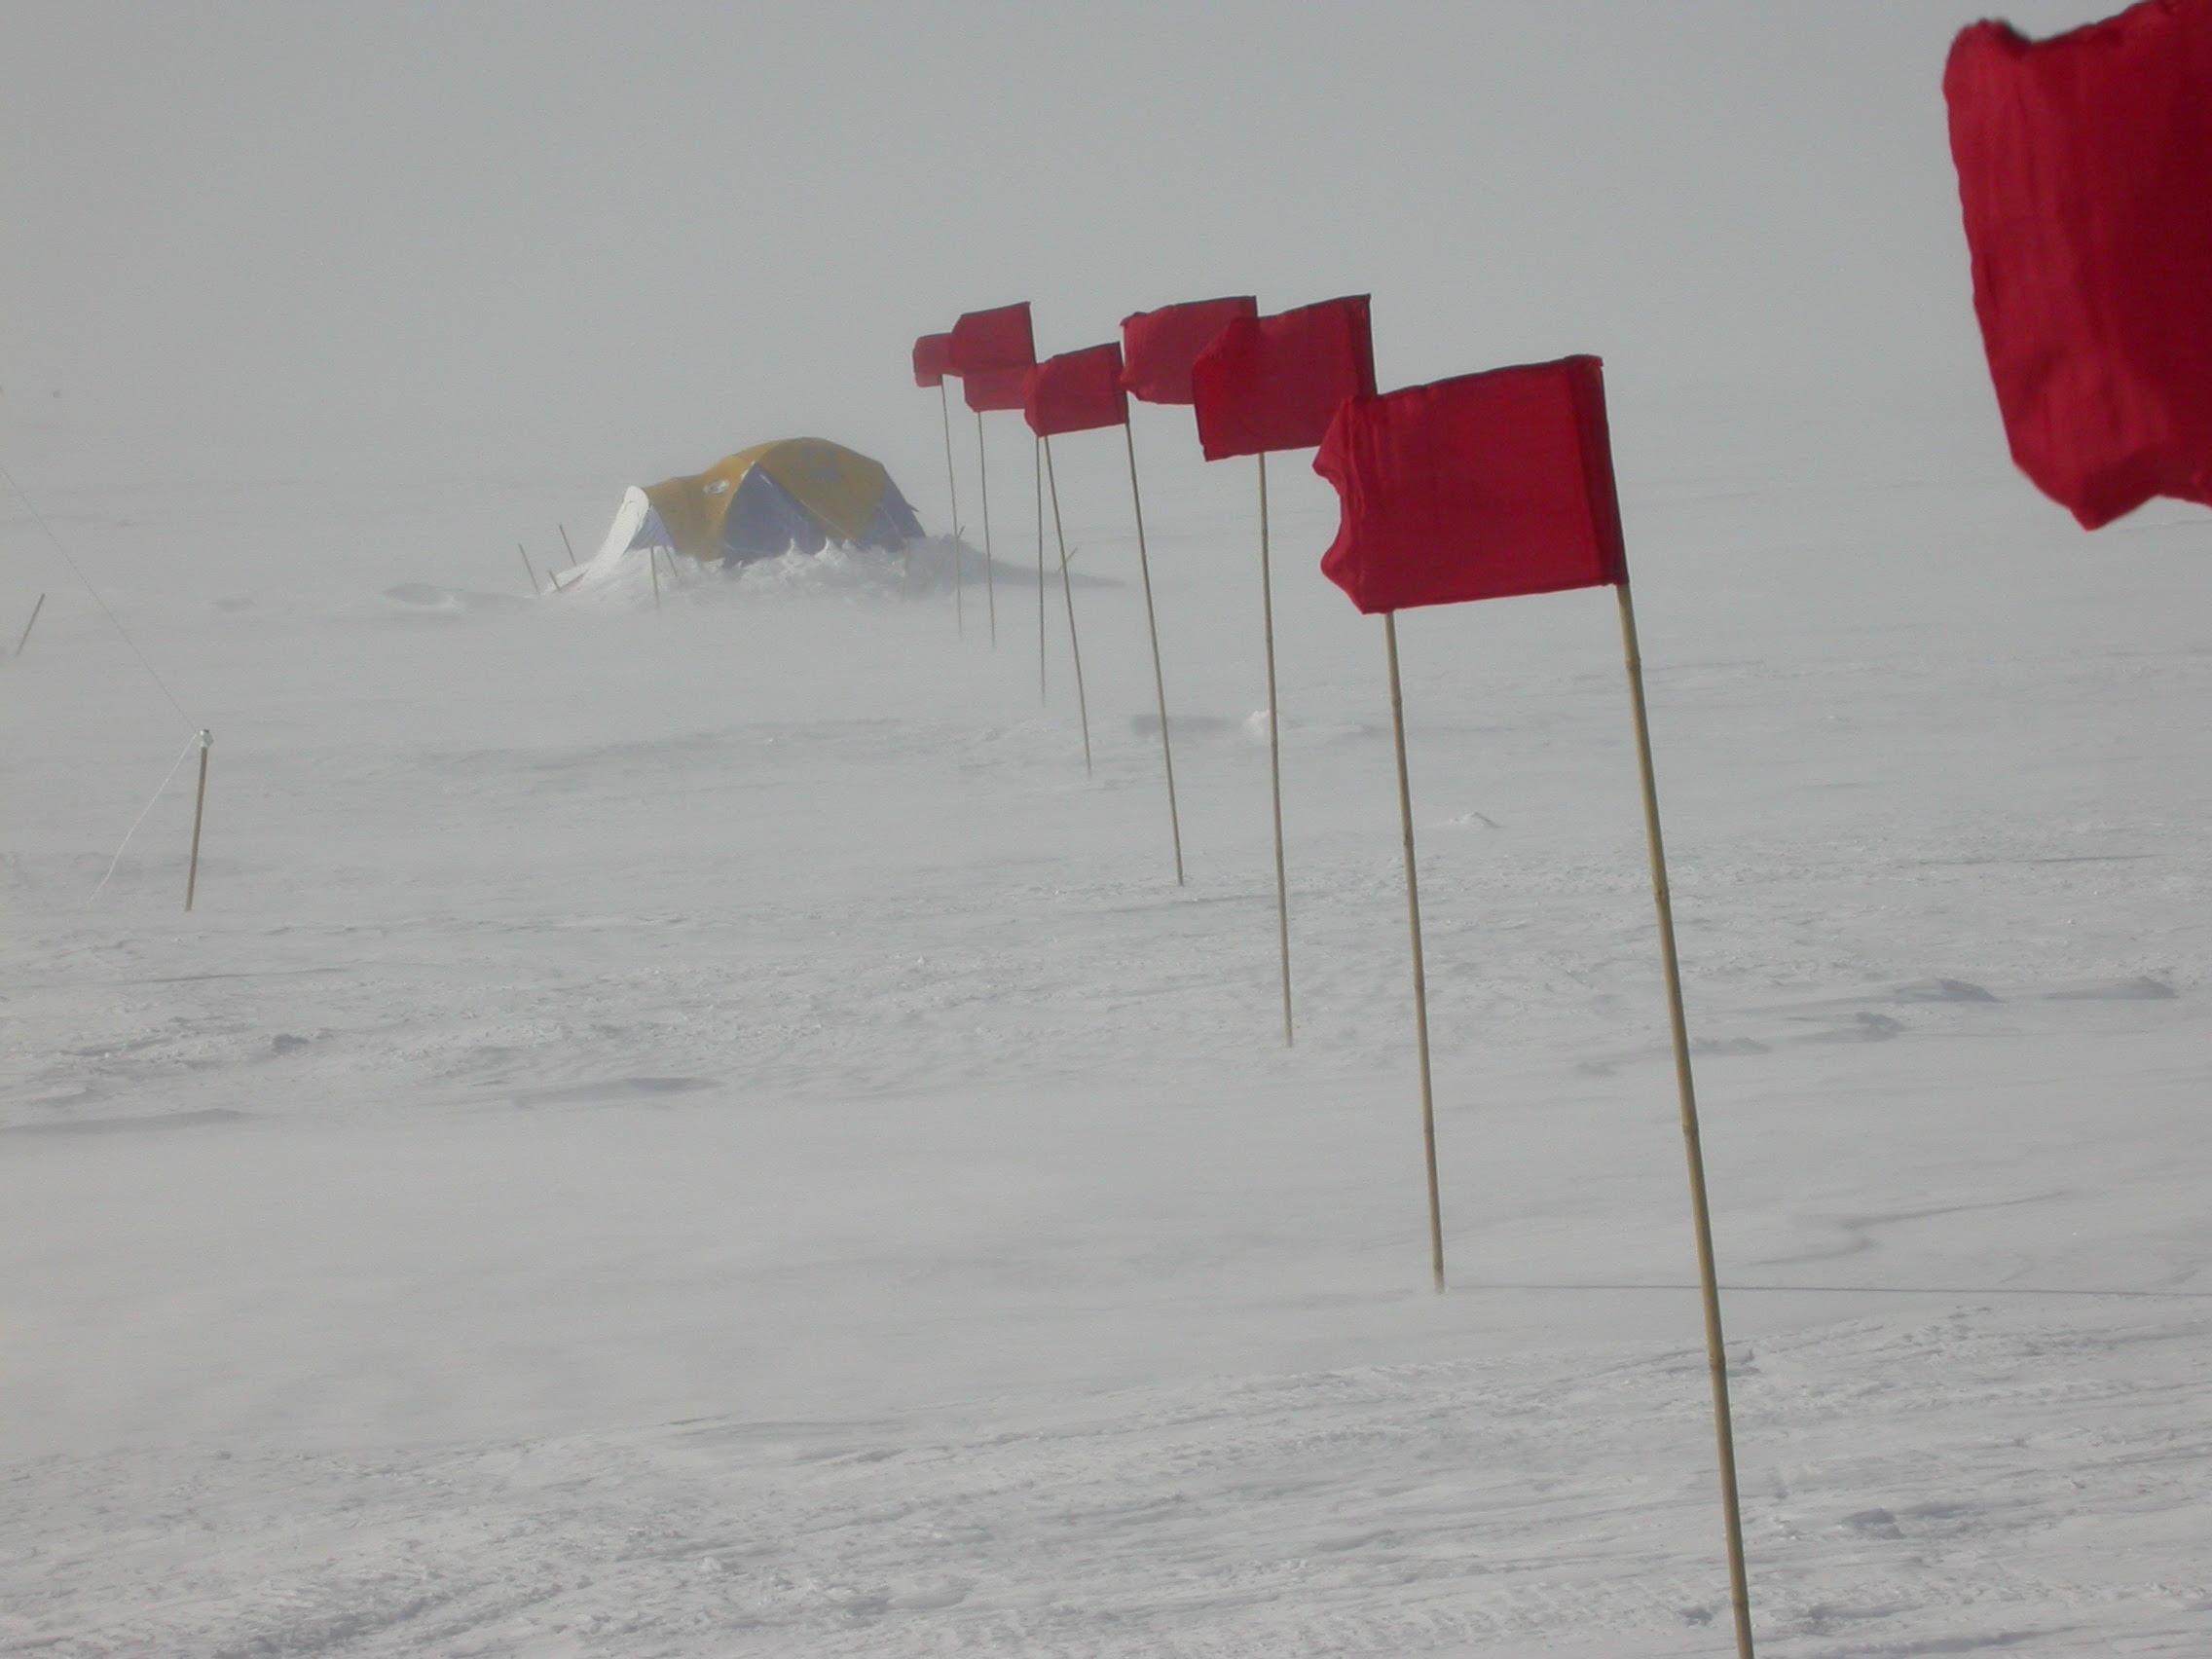 Meteorologists just found the coldest natural temperatures on the planet